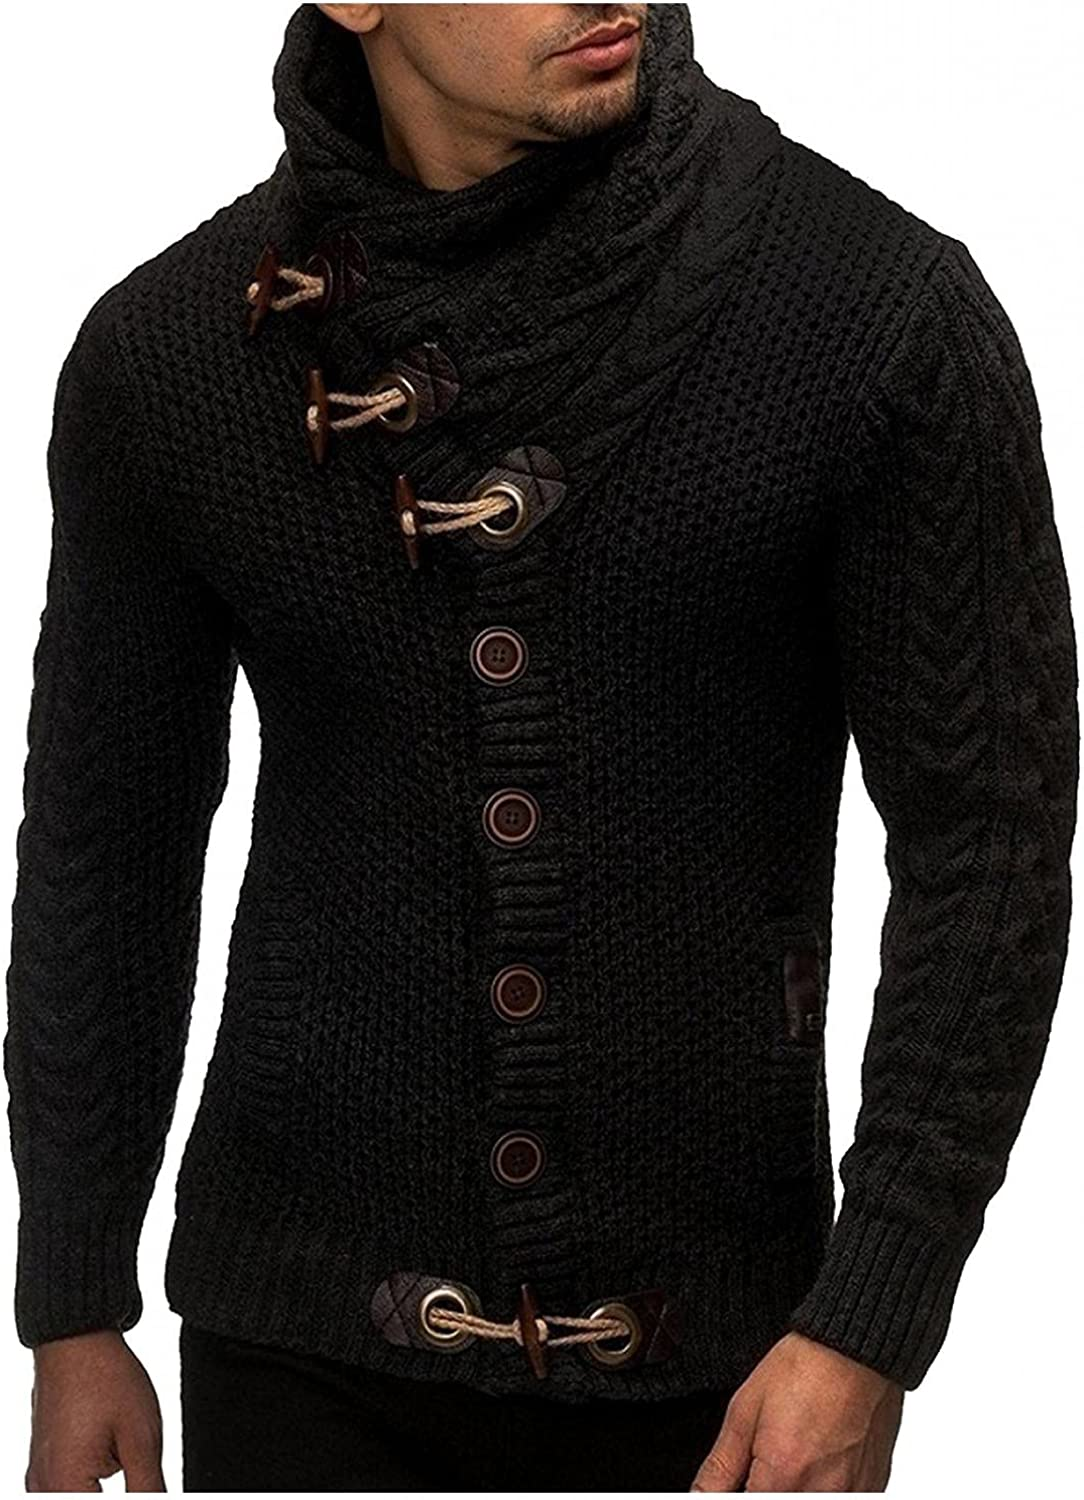 LEIYAN Mens Casual Knitted Sweaters Turtleneck Thermal Button Down Coats Hipster Loose Fit Cable Knit Jackets